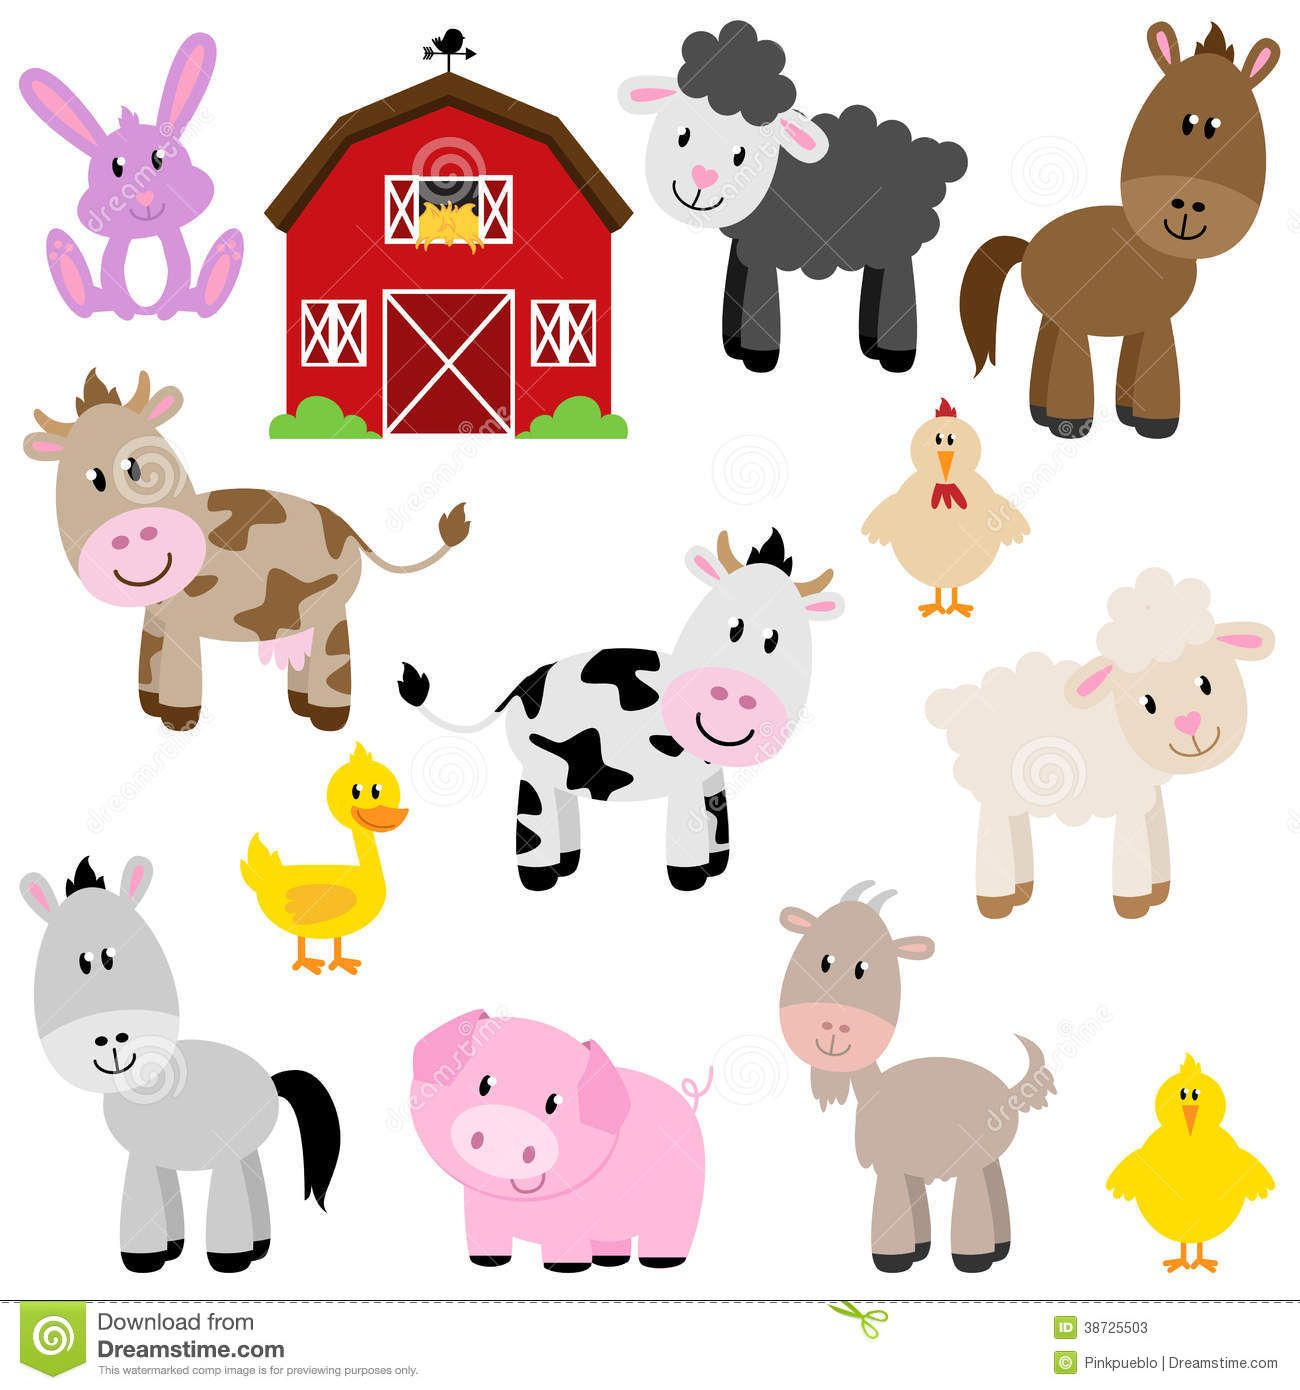 Vector Collection Of Cute Cartoon Farm Animals - Download From Over - Free Printable Farm Animal Cutouts